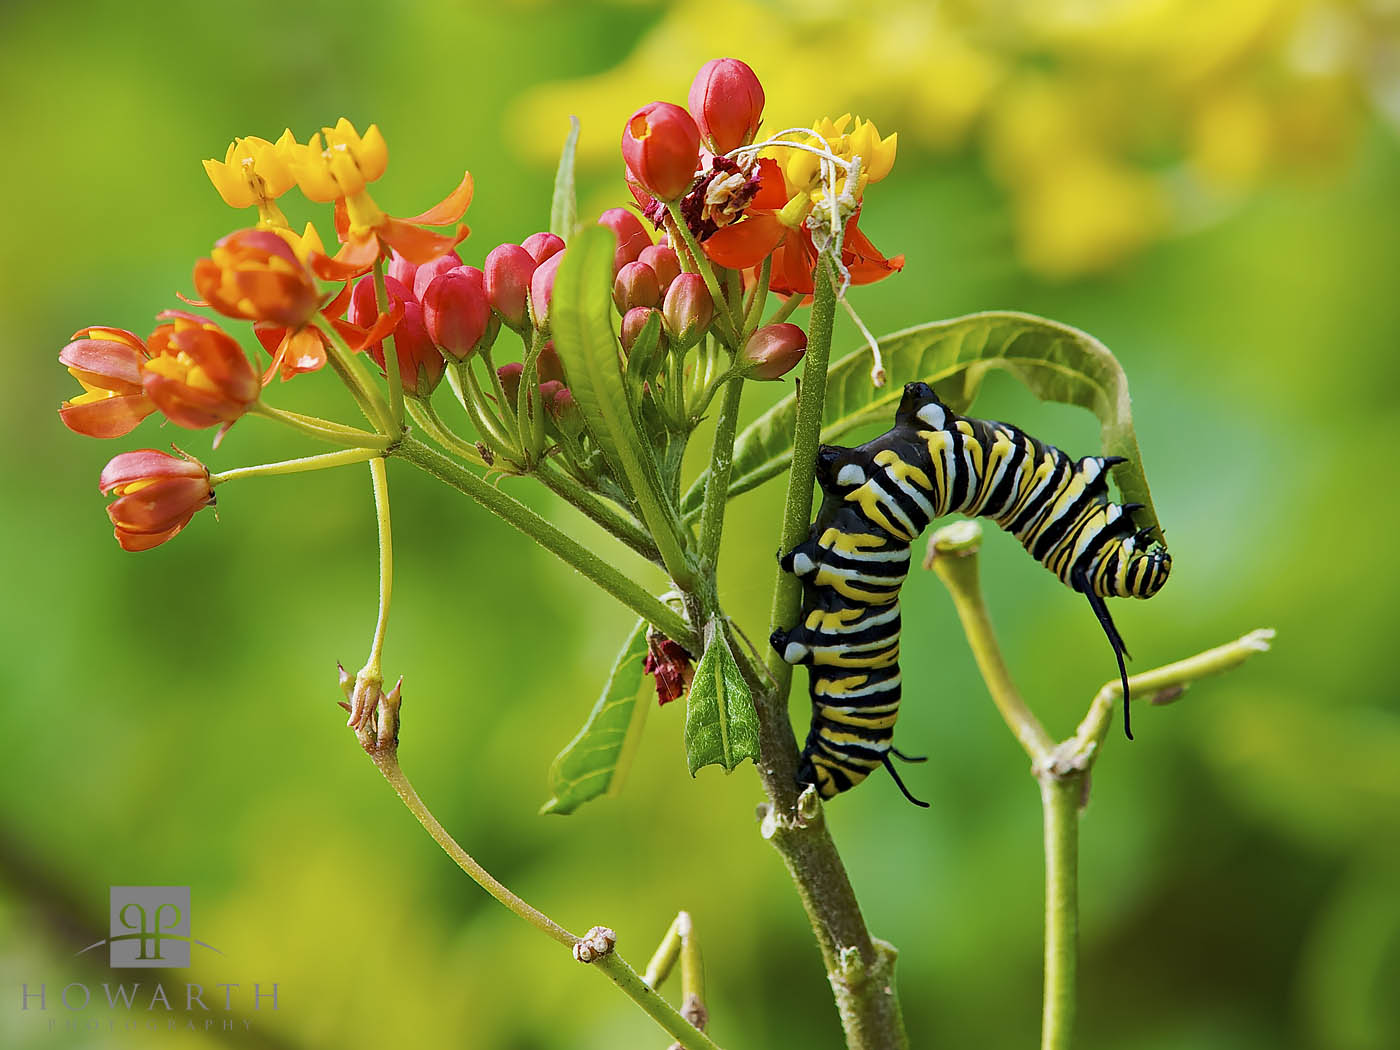 monarch, butterfly, milkweed, botanical gardens, caterpillar, photo